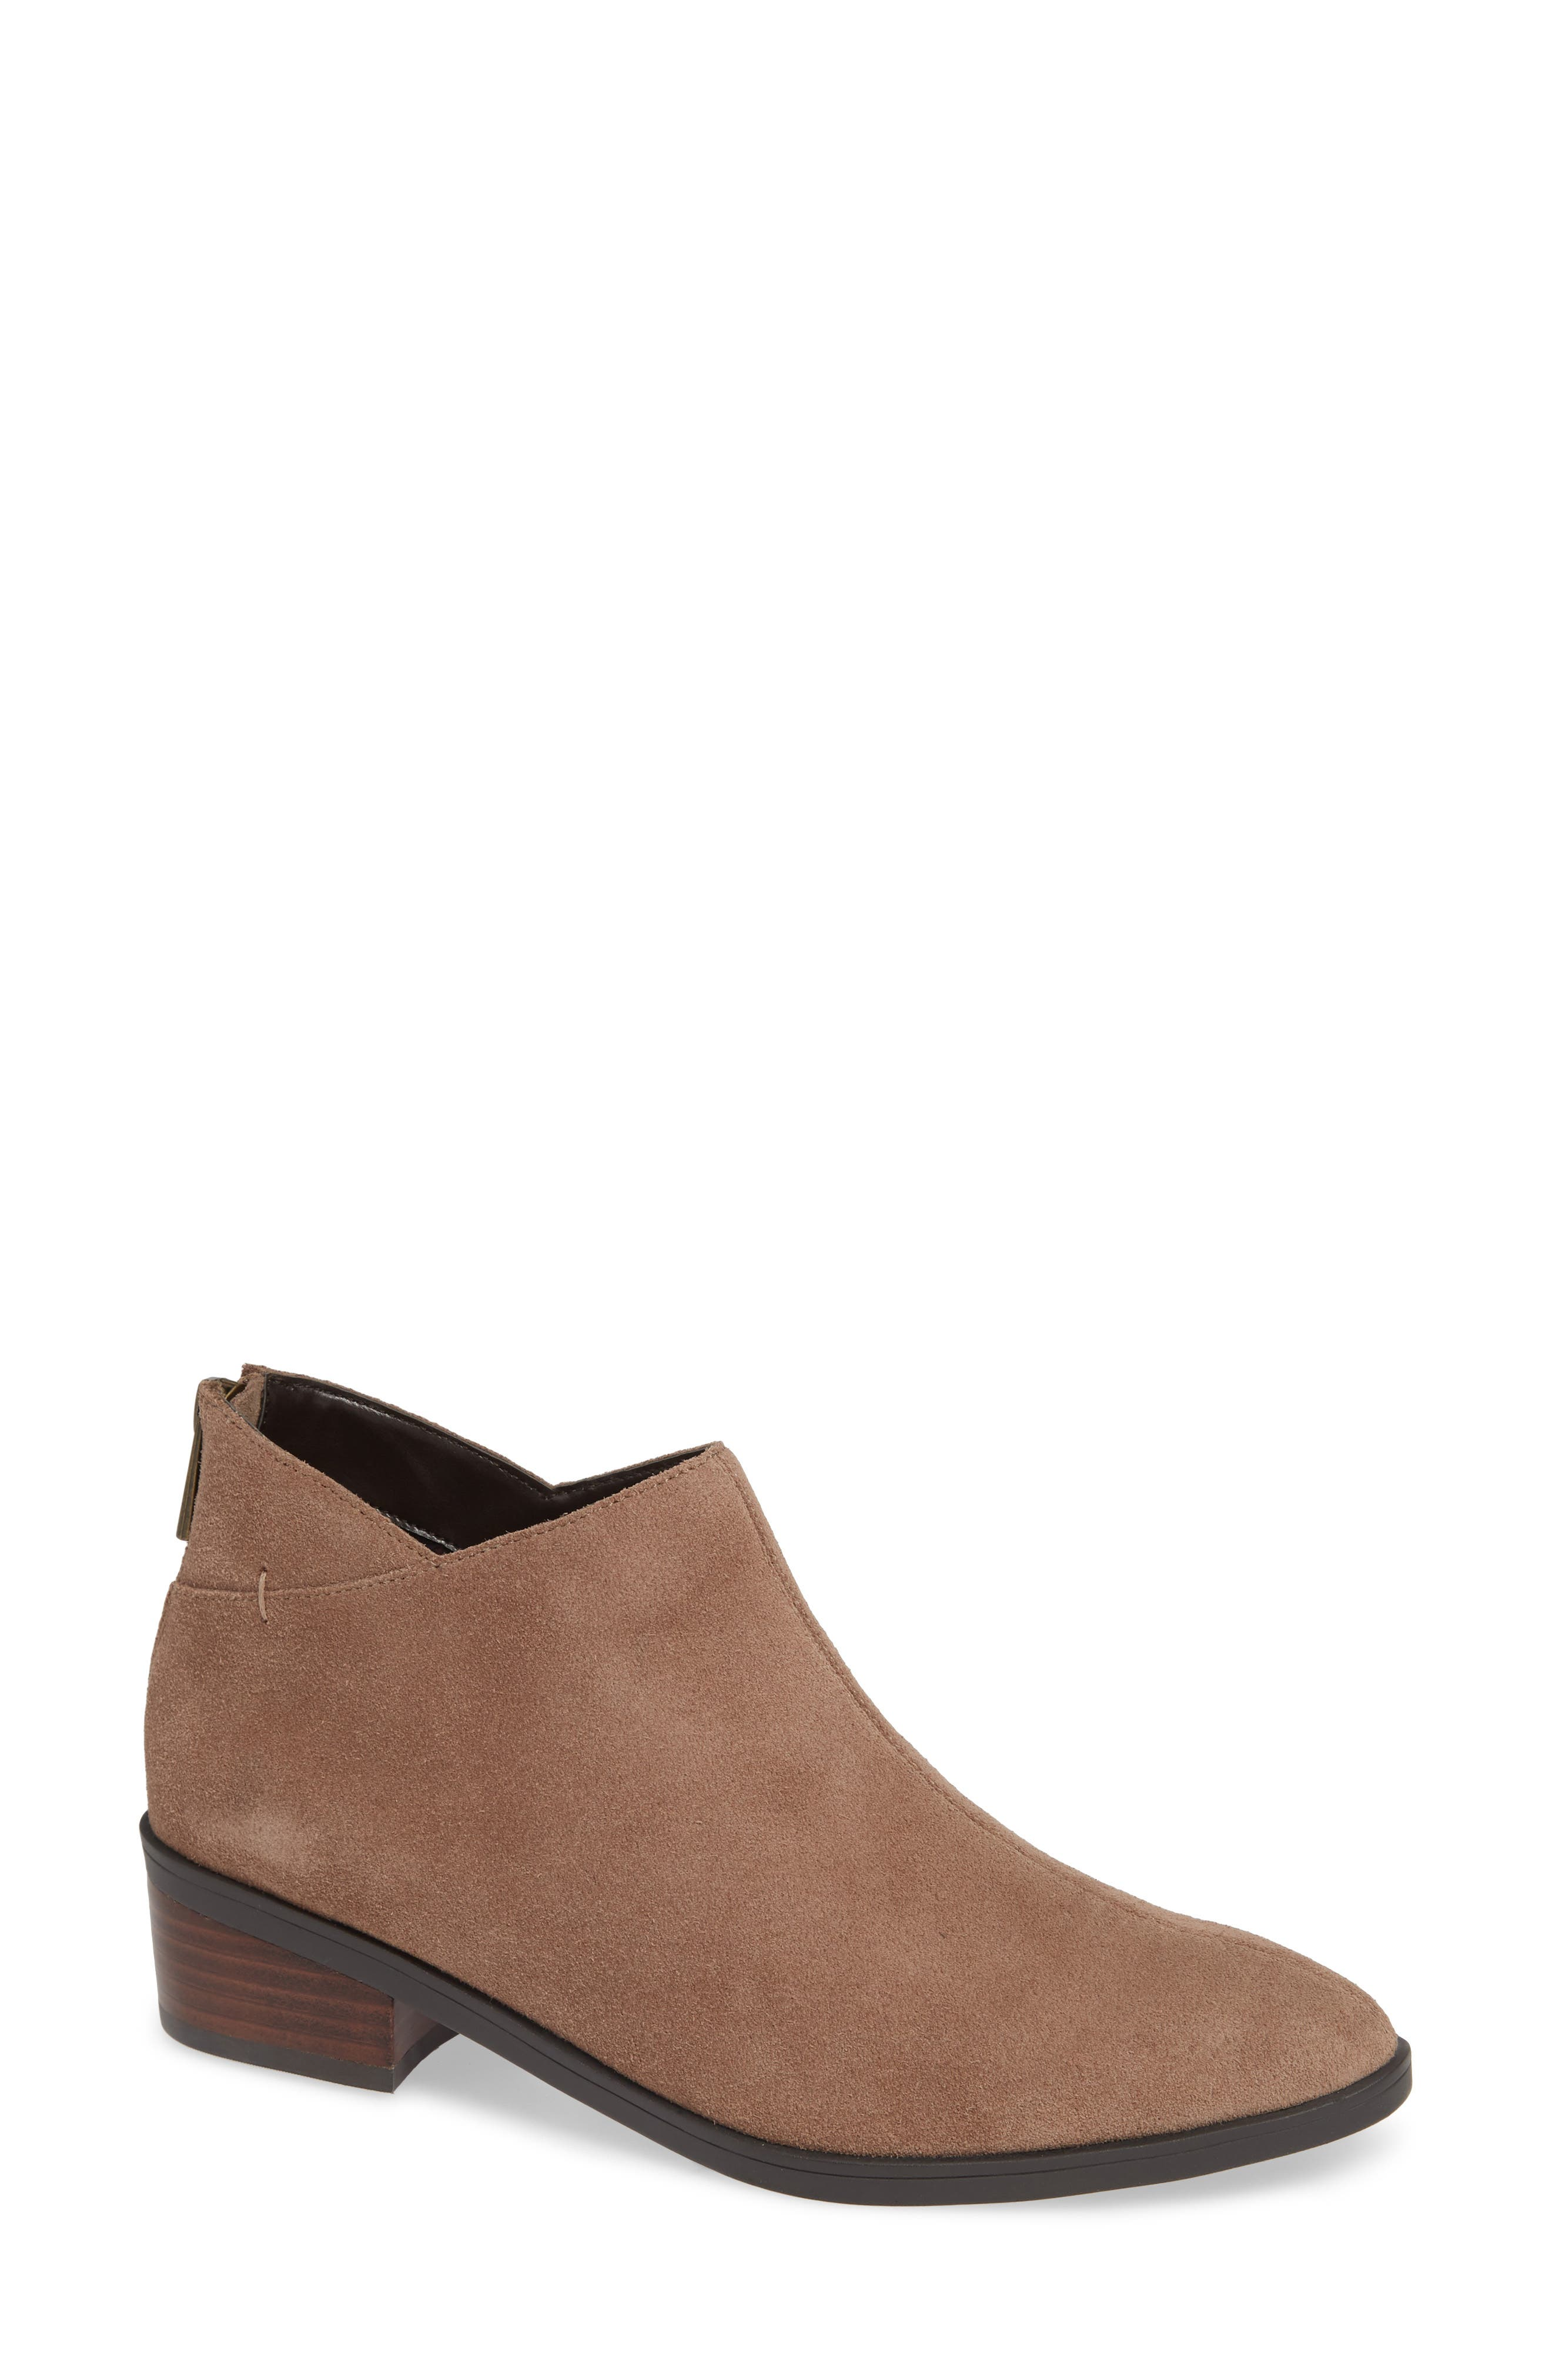 Haven Ankle Bootie,                         Main,                         color, ALMOND SUEDE